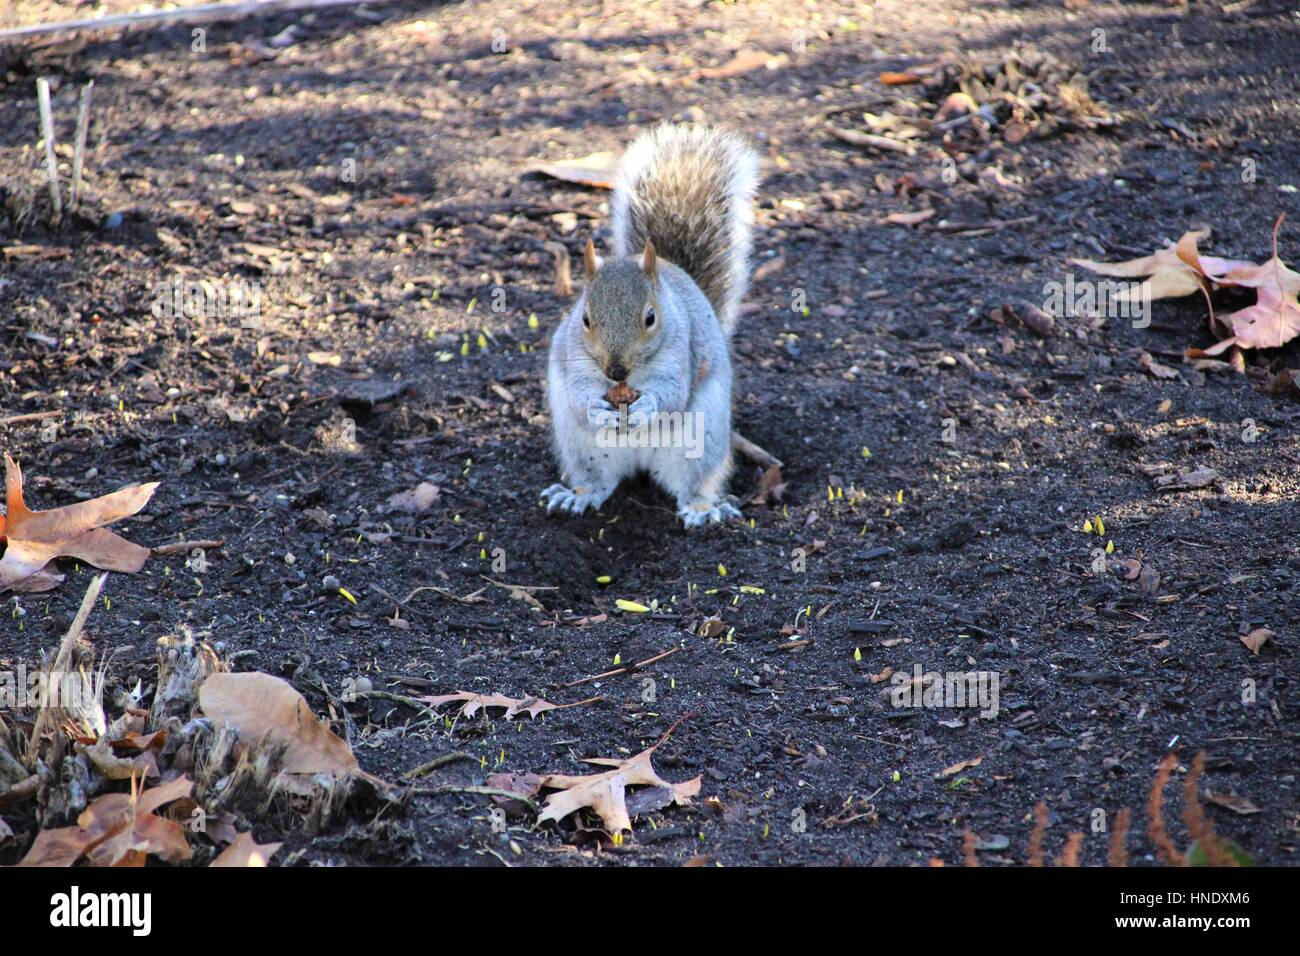 Eastern grey squirrel (Sciurus carolinensis) eating a nut in Central Park, Manhattan, New York City, United States - Stock Image